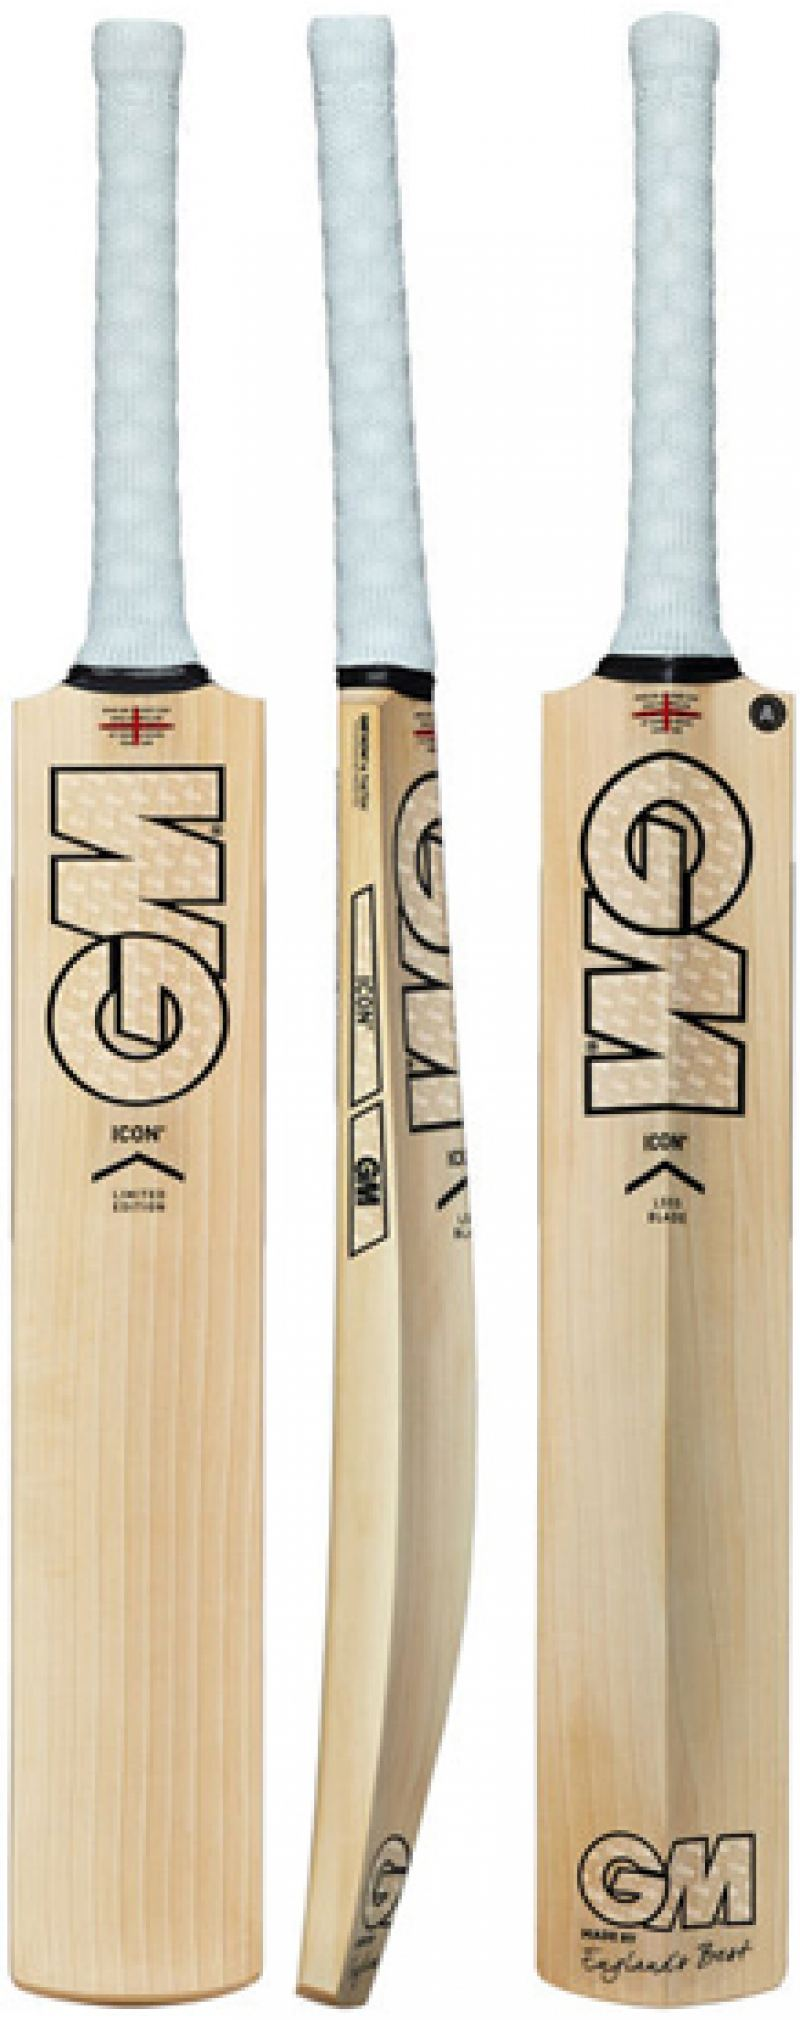 Gunn and Moore Icon L555 DXM Signature Cricket Bat